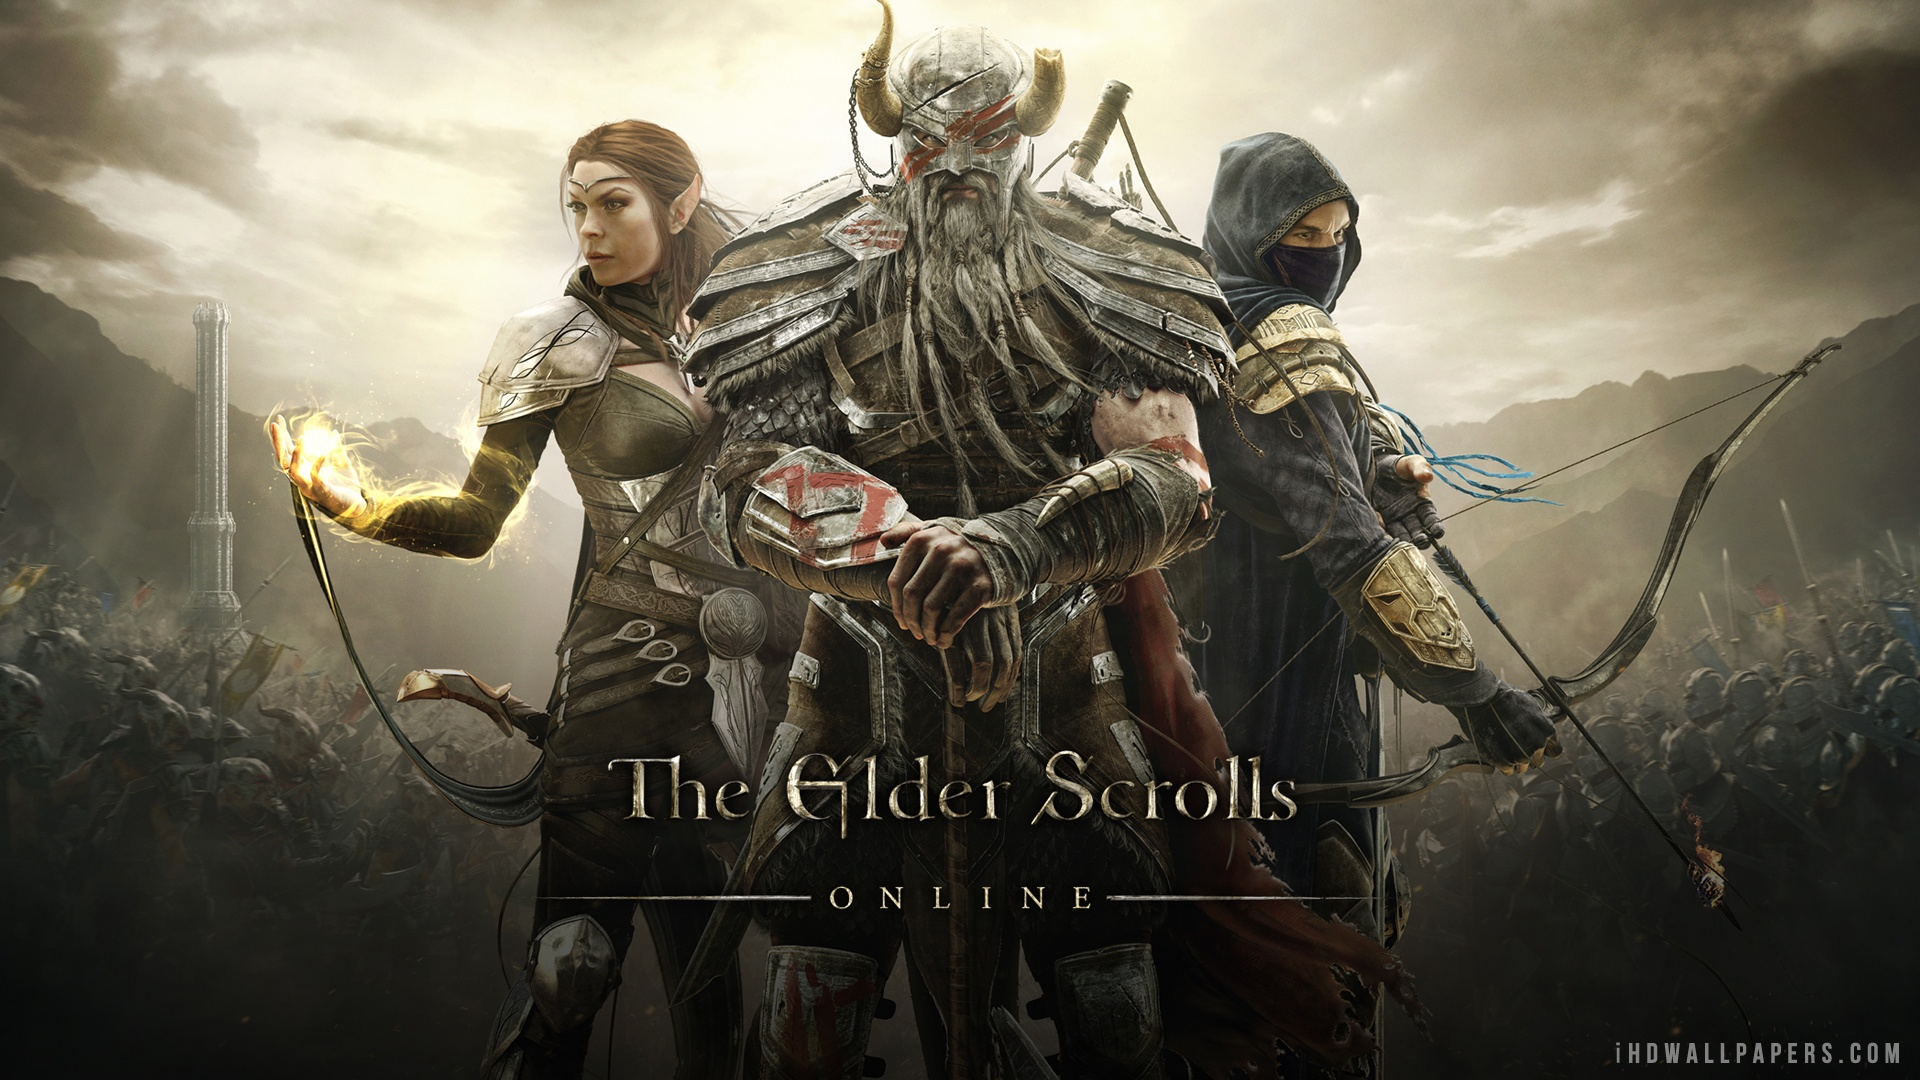 Free Download The Elder Scrolls Online 2013 Hd Wallpaper Ihd